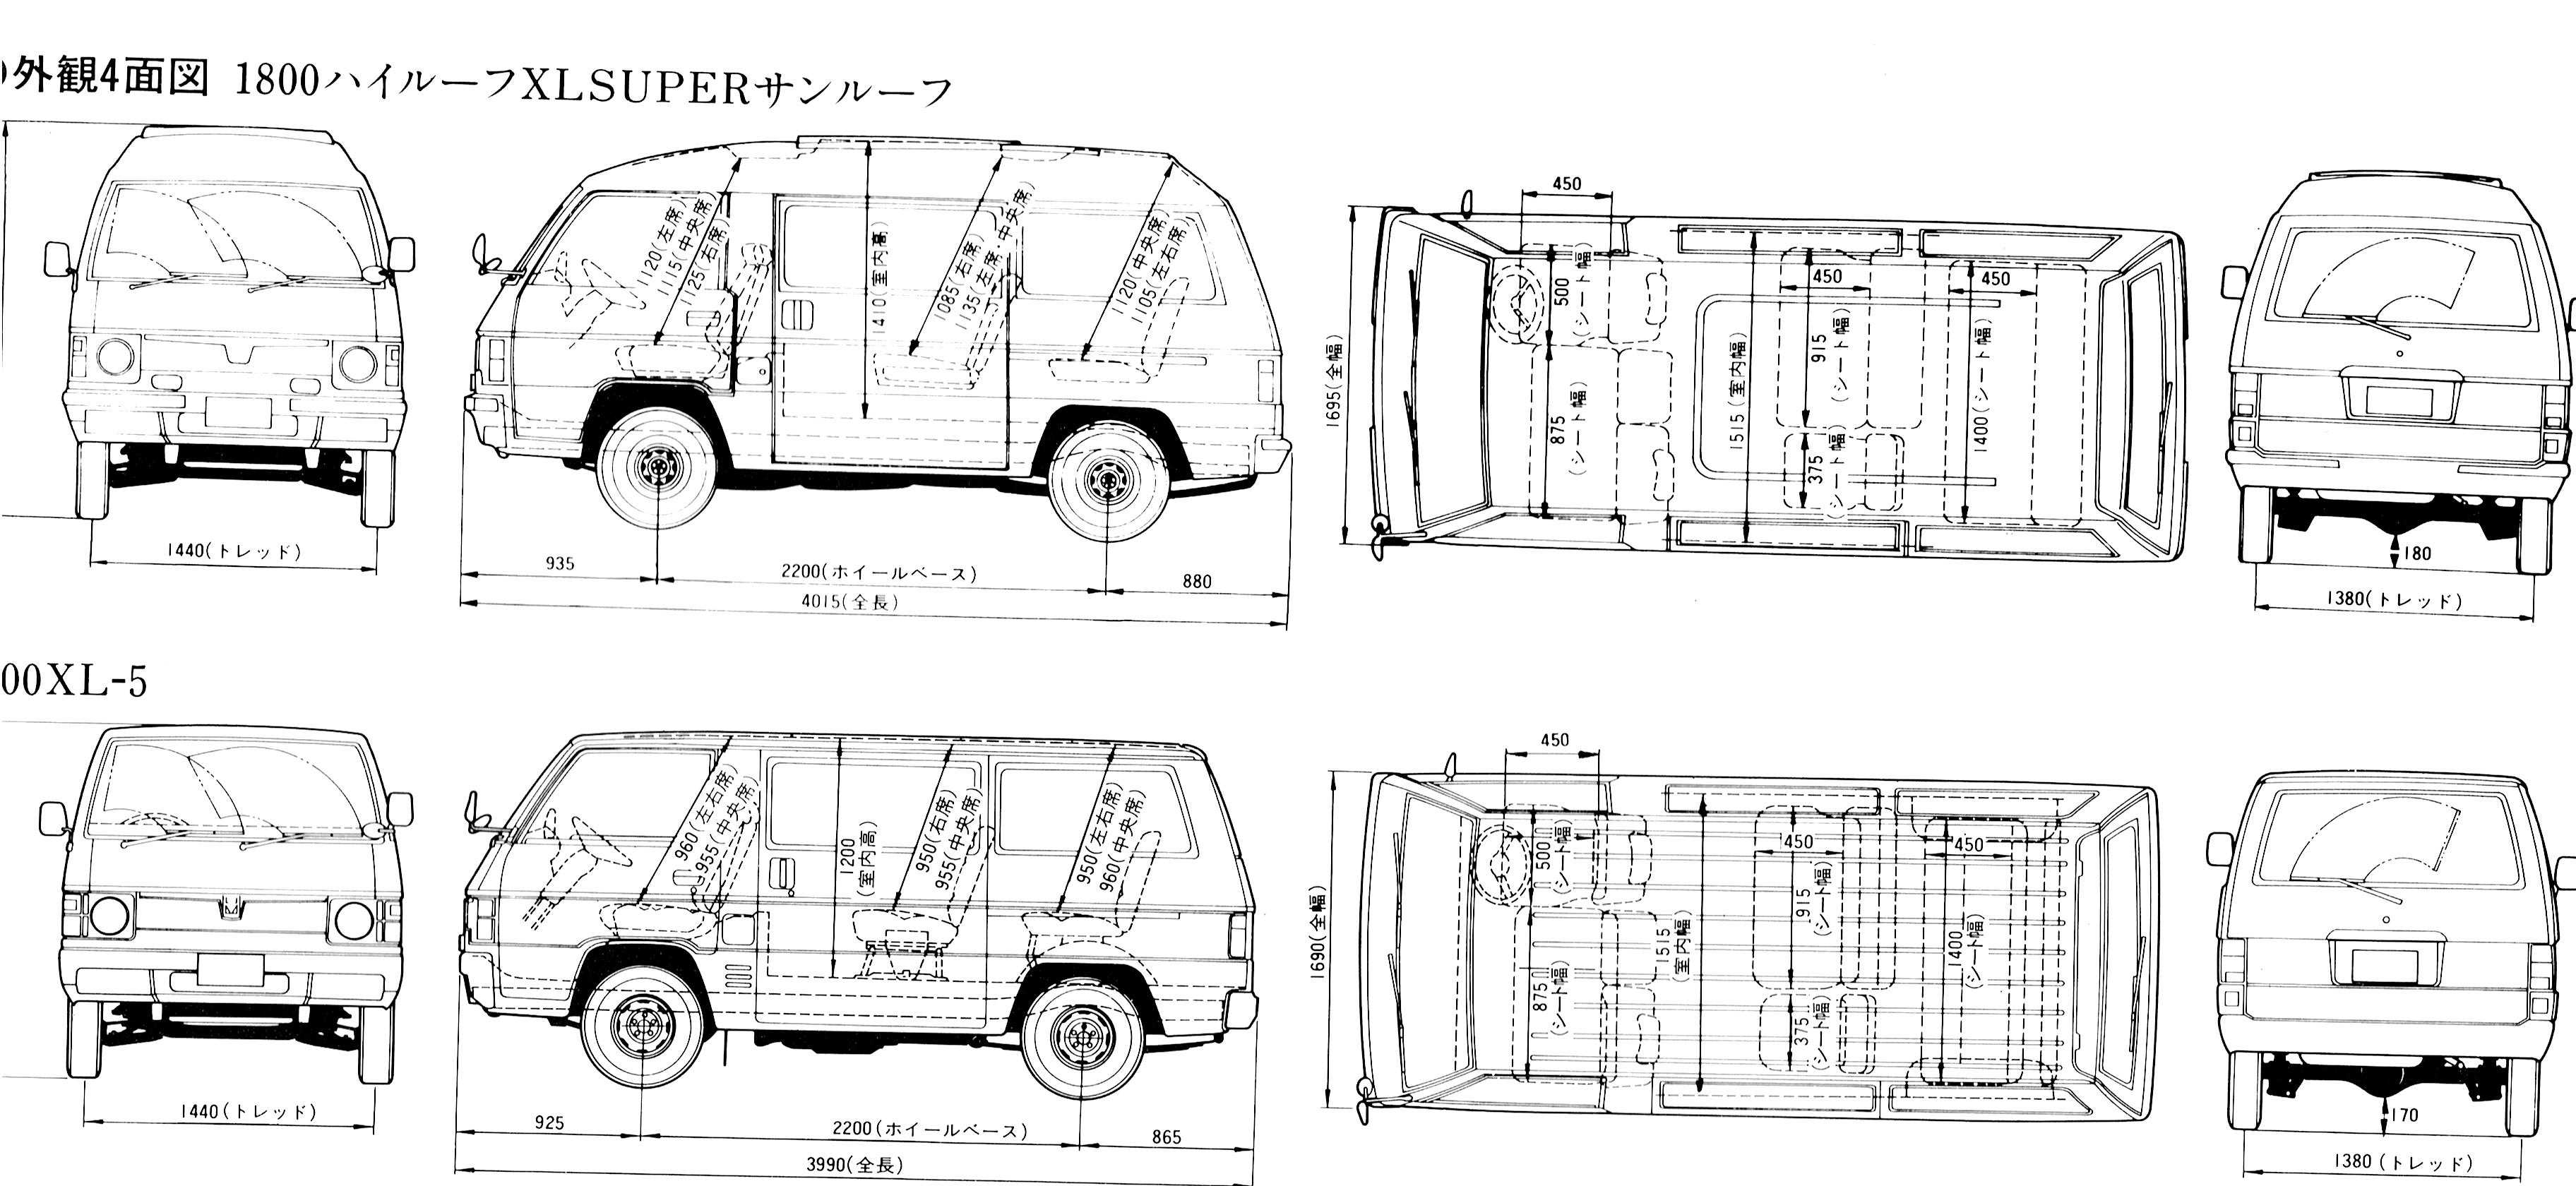 Spaceline] Blueprints - Datenbank - Mitsubishi Fan Forum